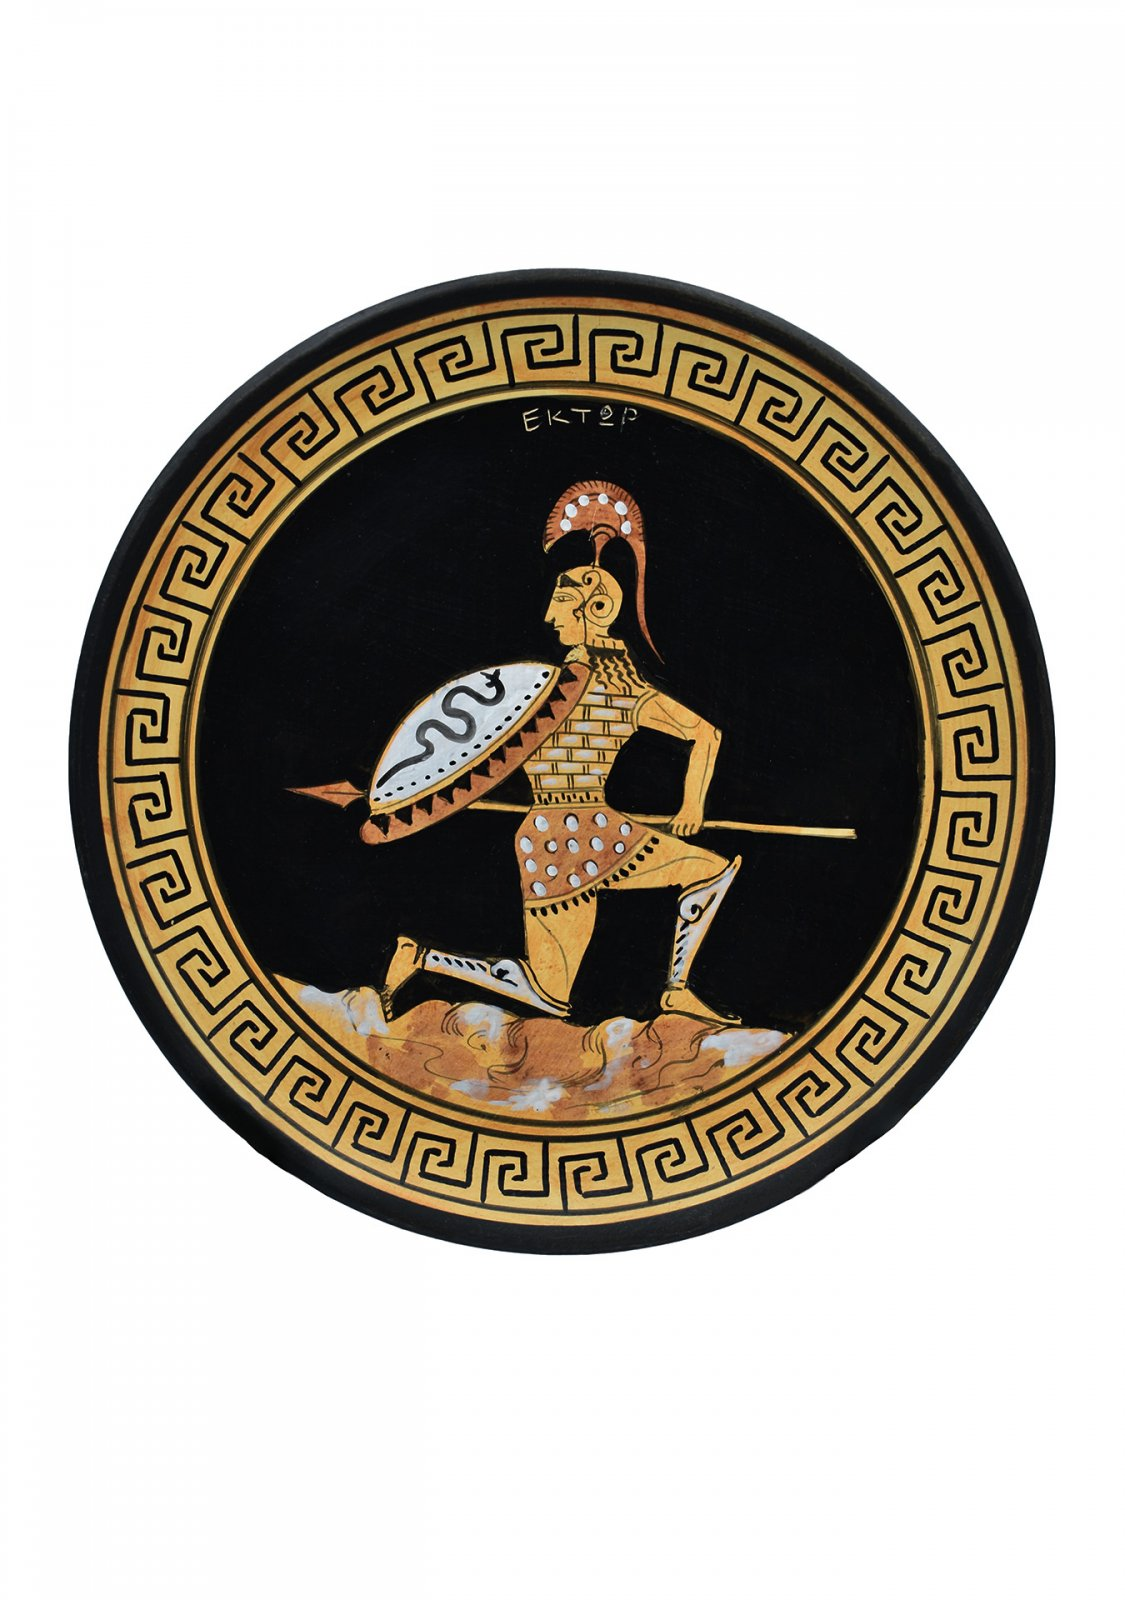 Greek ceramic plate depicting Hector, prince and warrior of Troy (24cm)